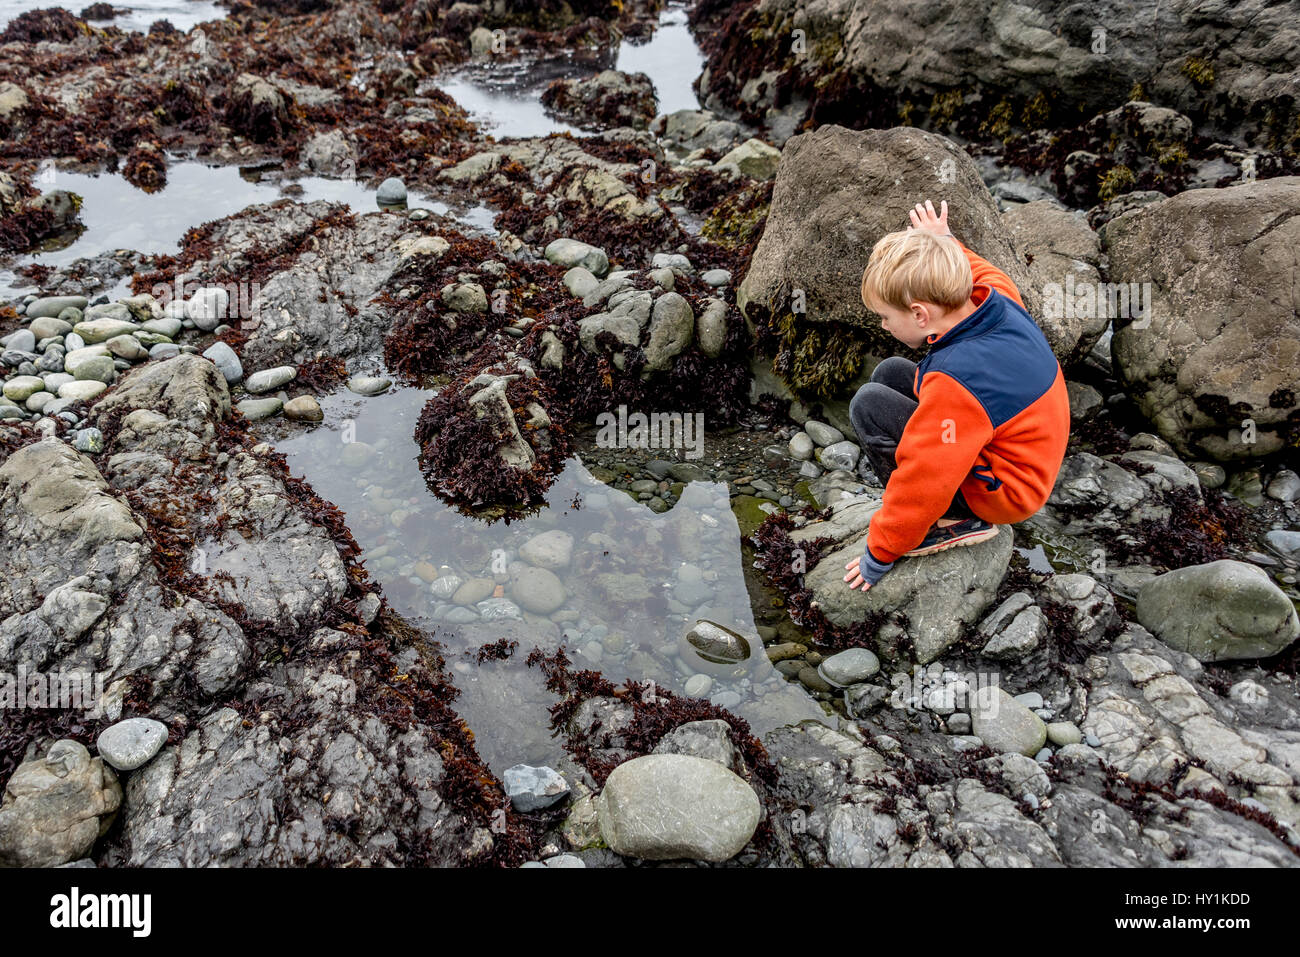 A little boy / child looks into a tide pool at MacKerricher State Park in Mendocino County on the northern California - Stock Image